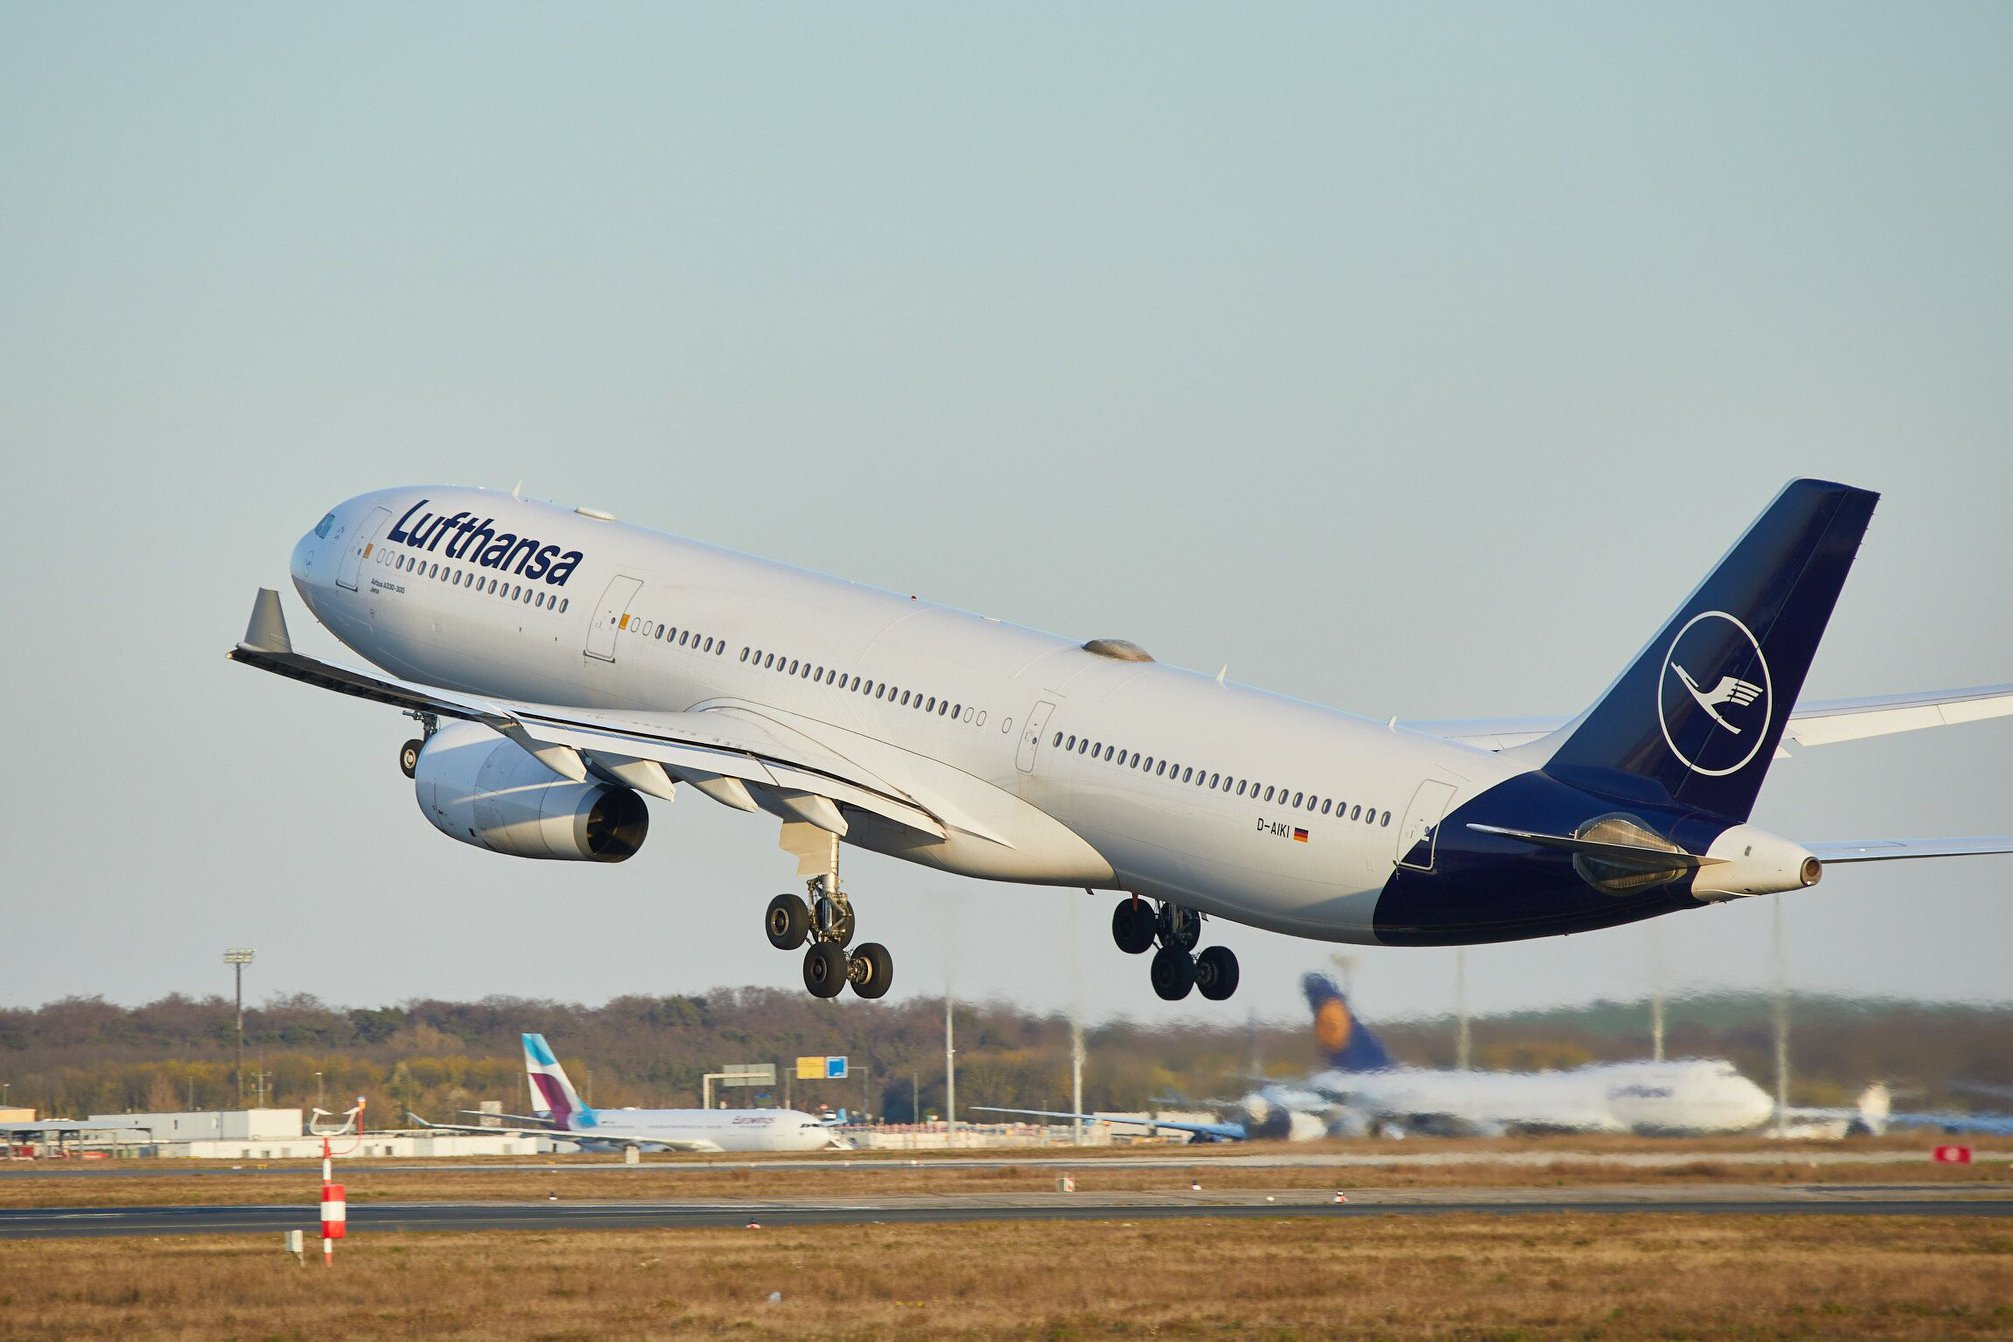 German Lufthansa has accepted a new restructuring package